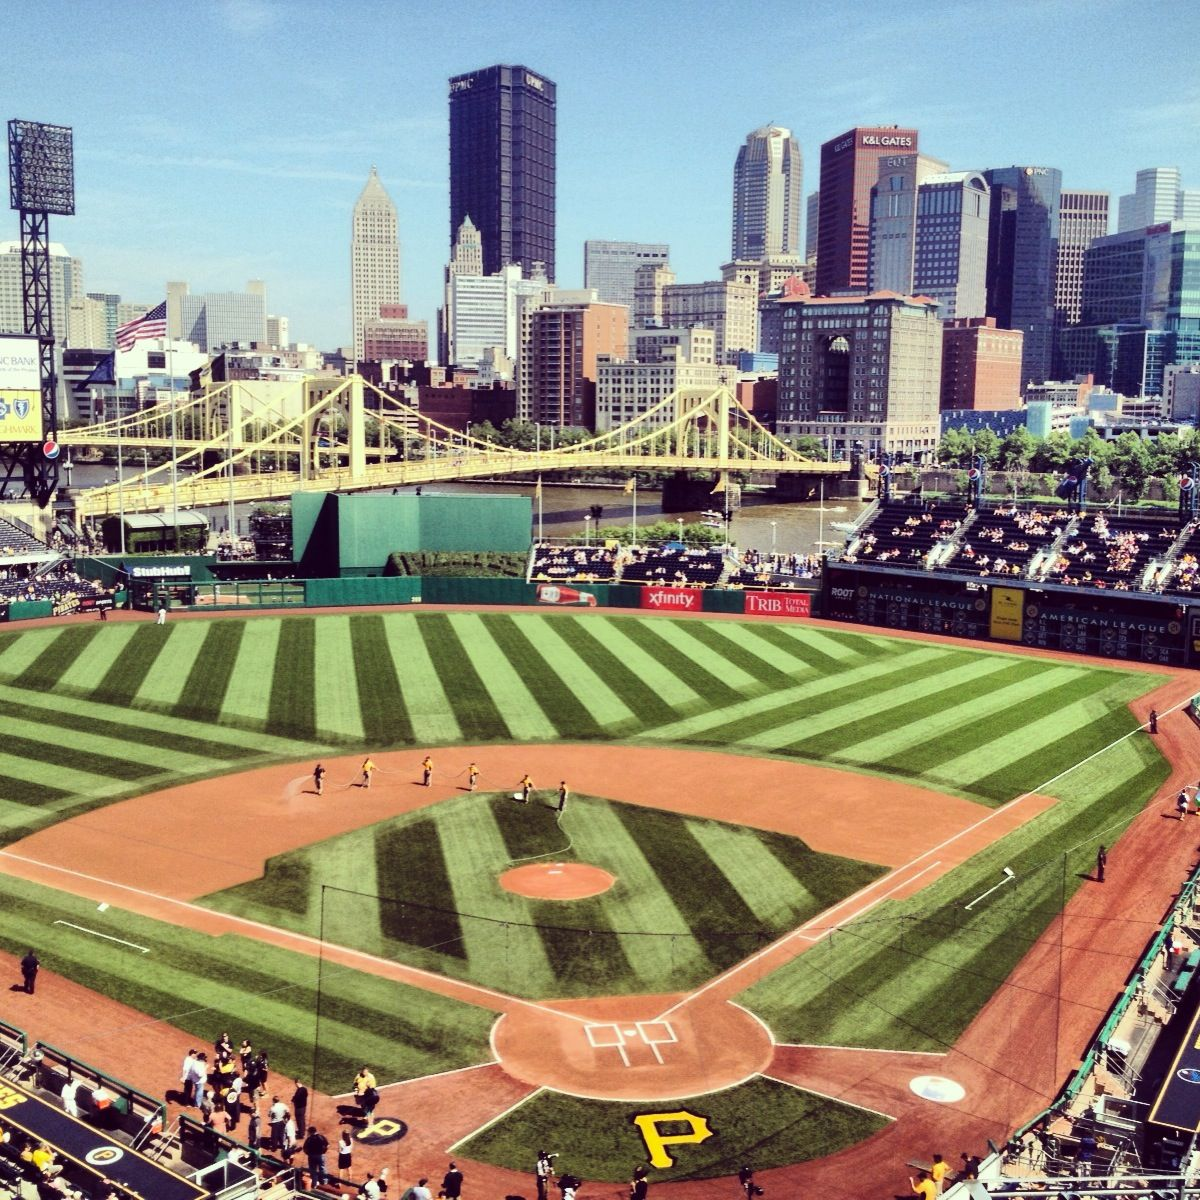 Pnc Park Let S Go Bucs Been Here Several Times Beautiful Ballpark Pittsburgh Pirates Baseball Baseball Park Baseball Stadium